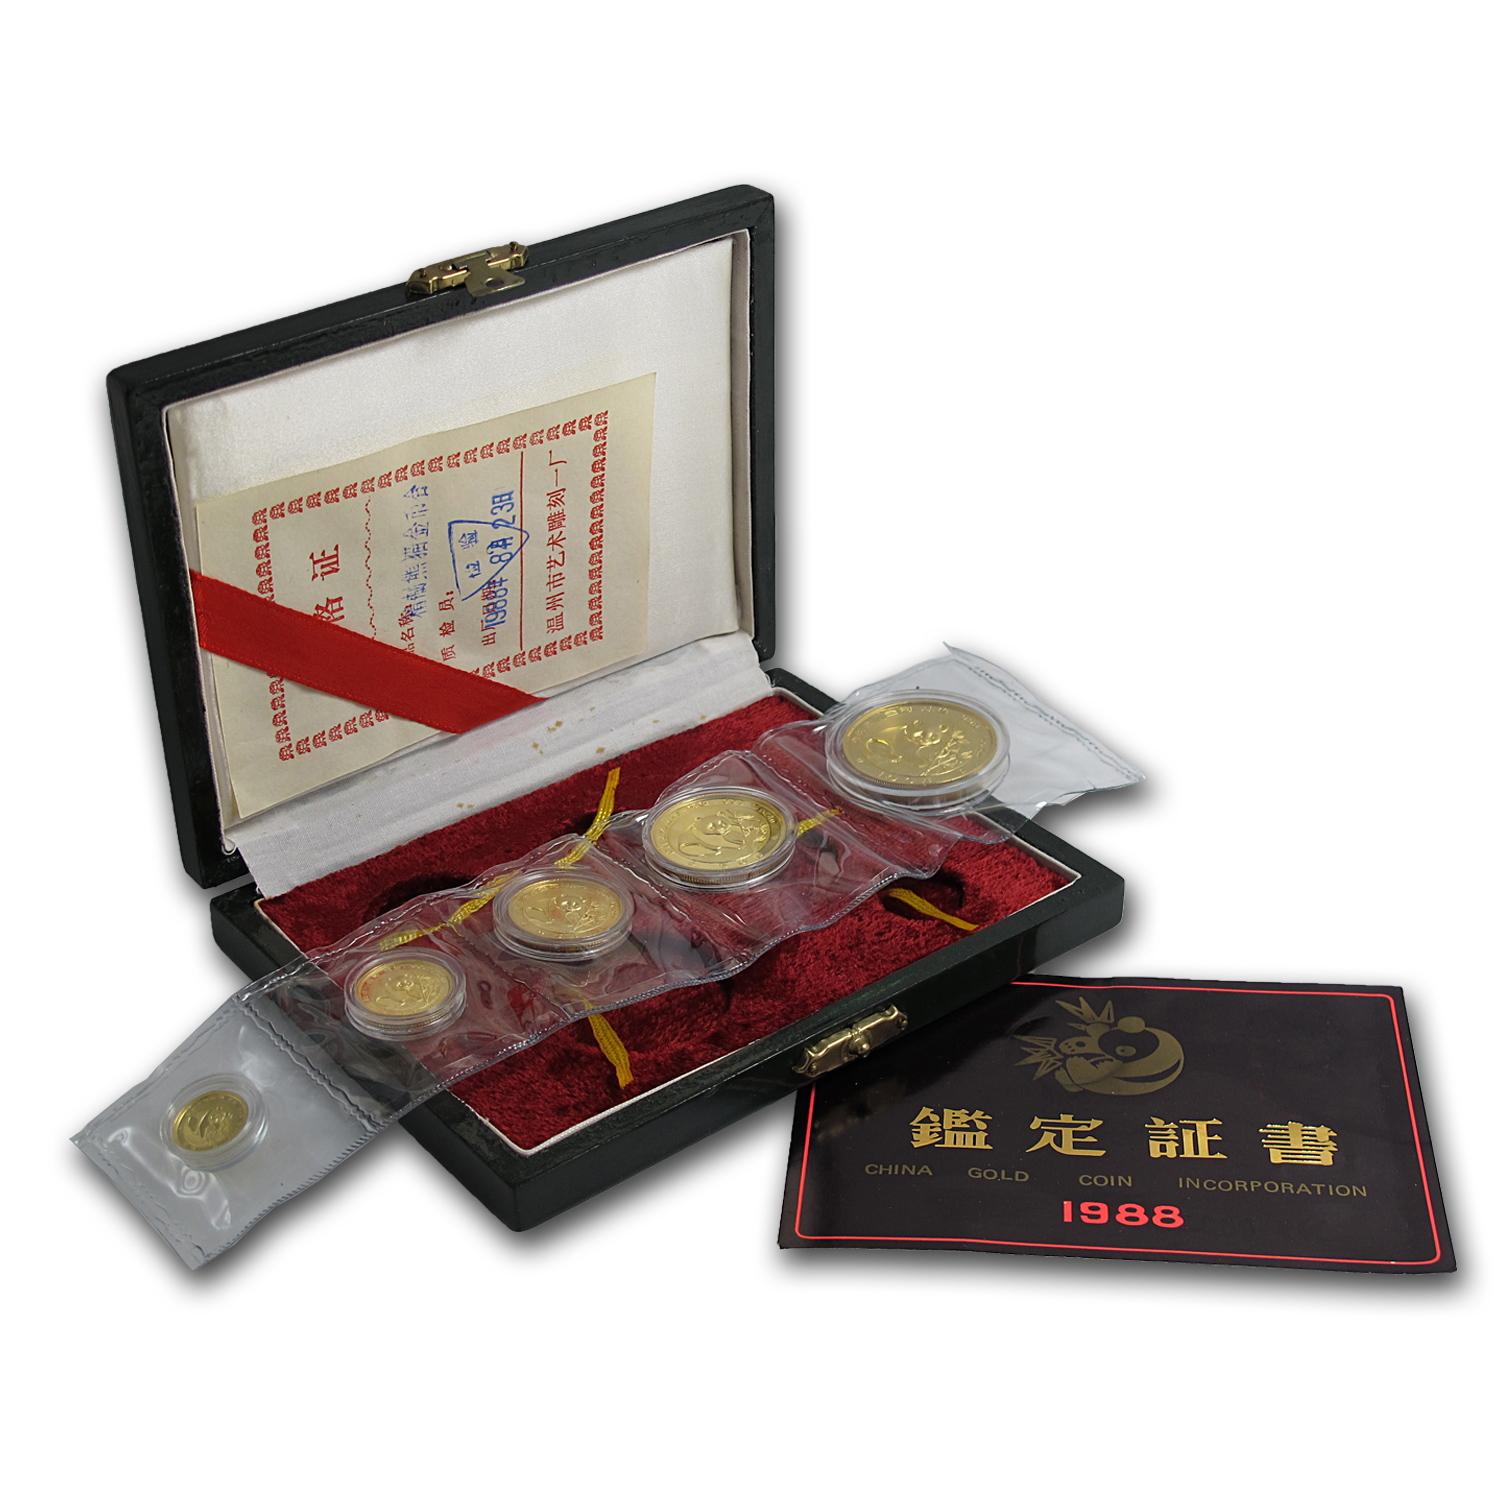 1988 5-Coin Gold Chinese Panda Proof Set (In Original Box)